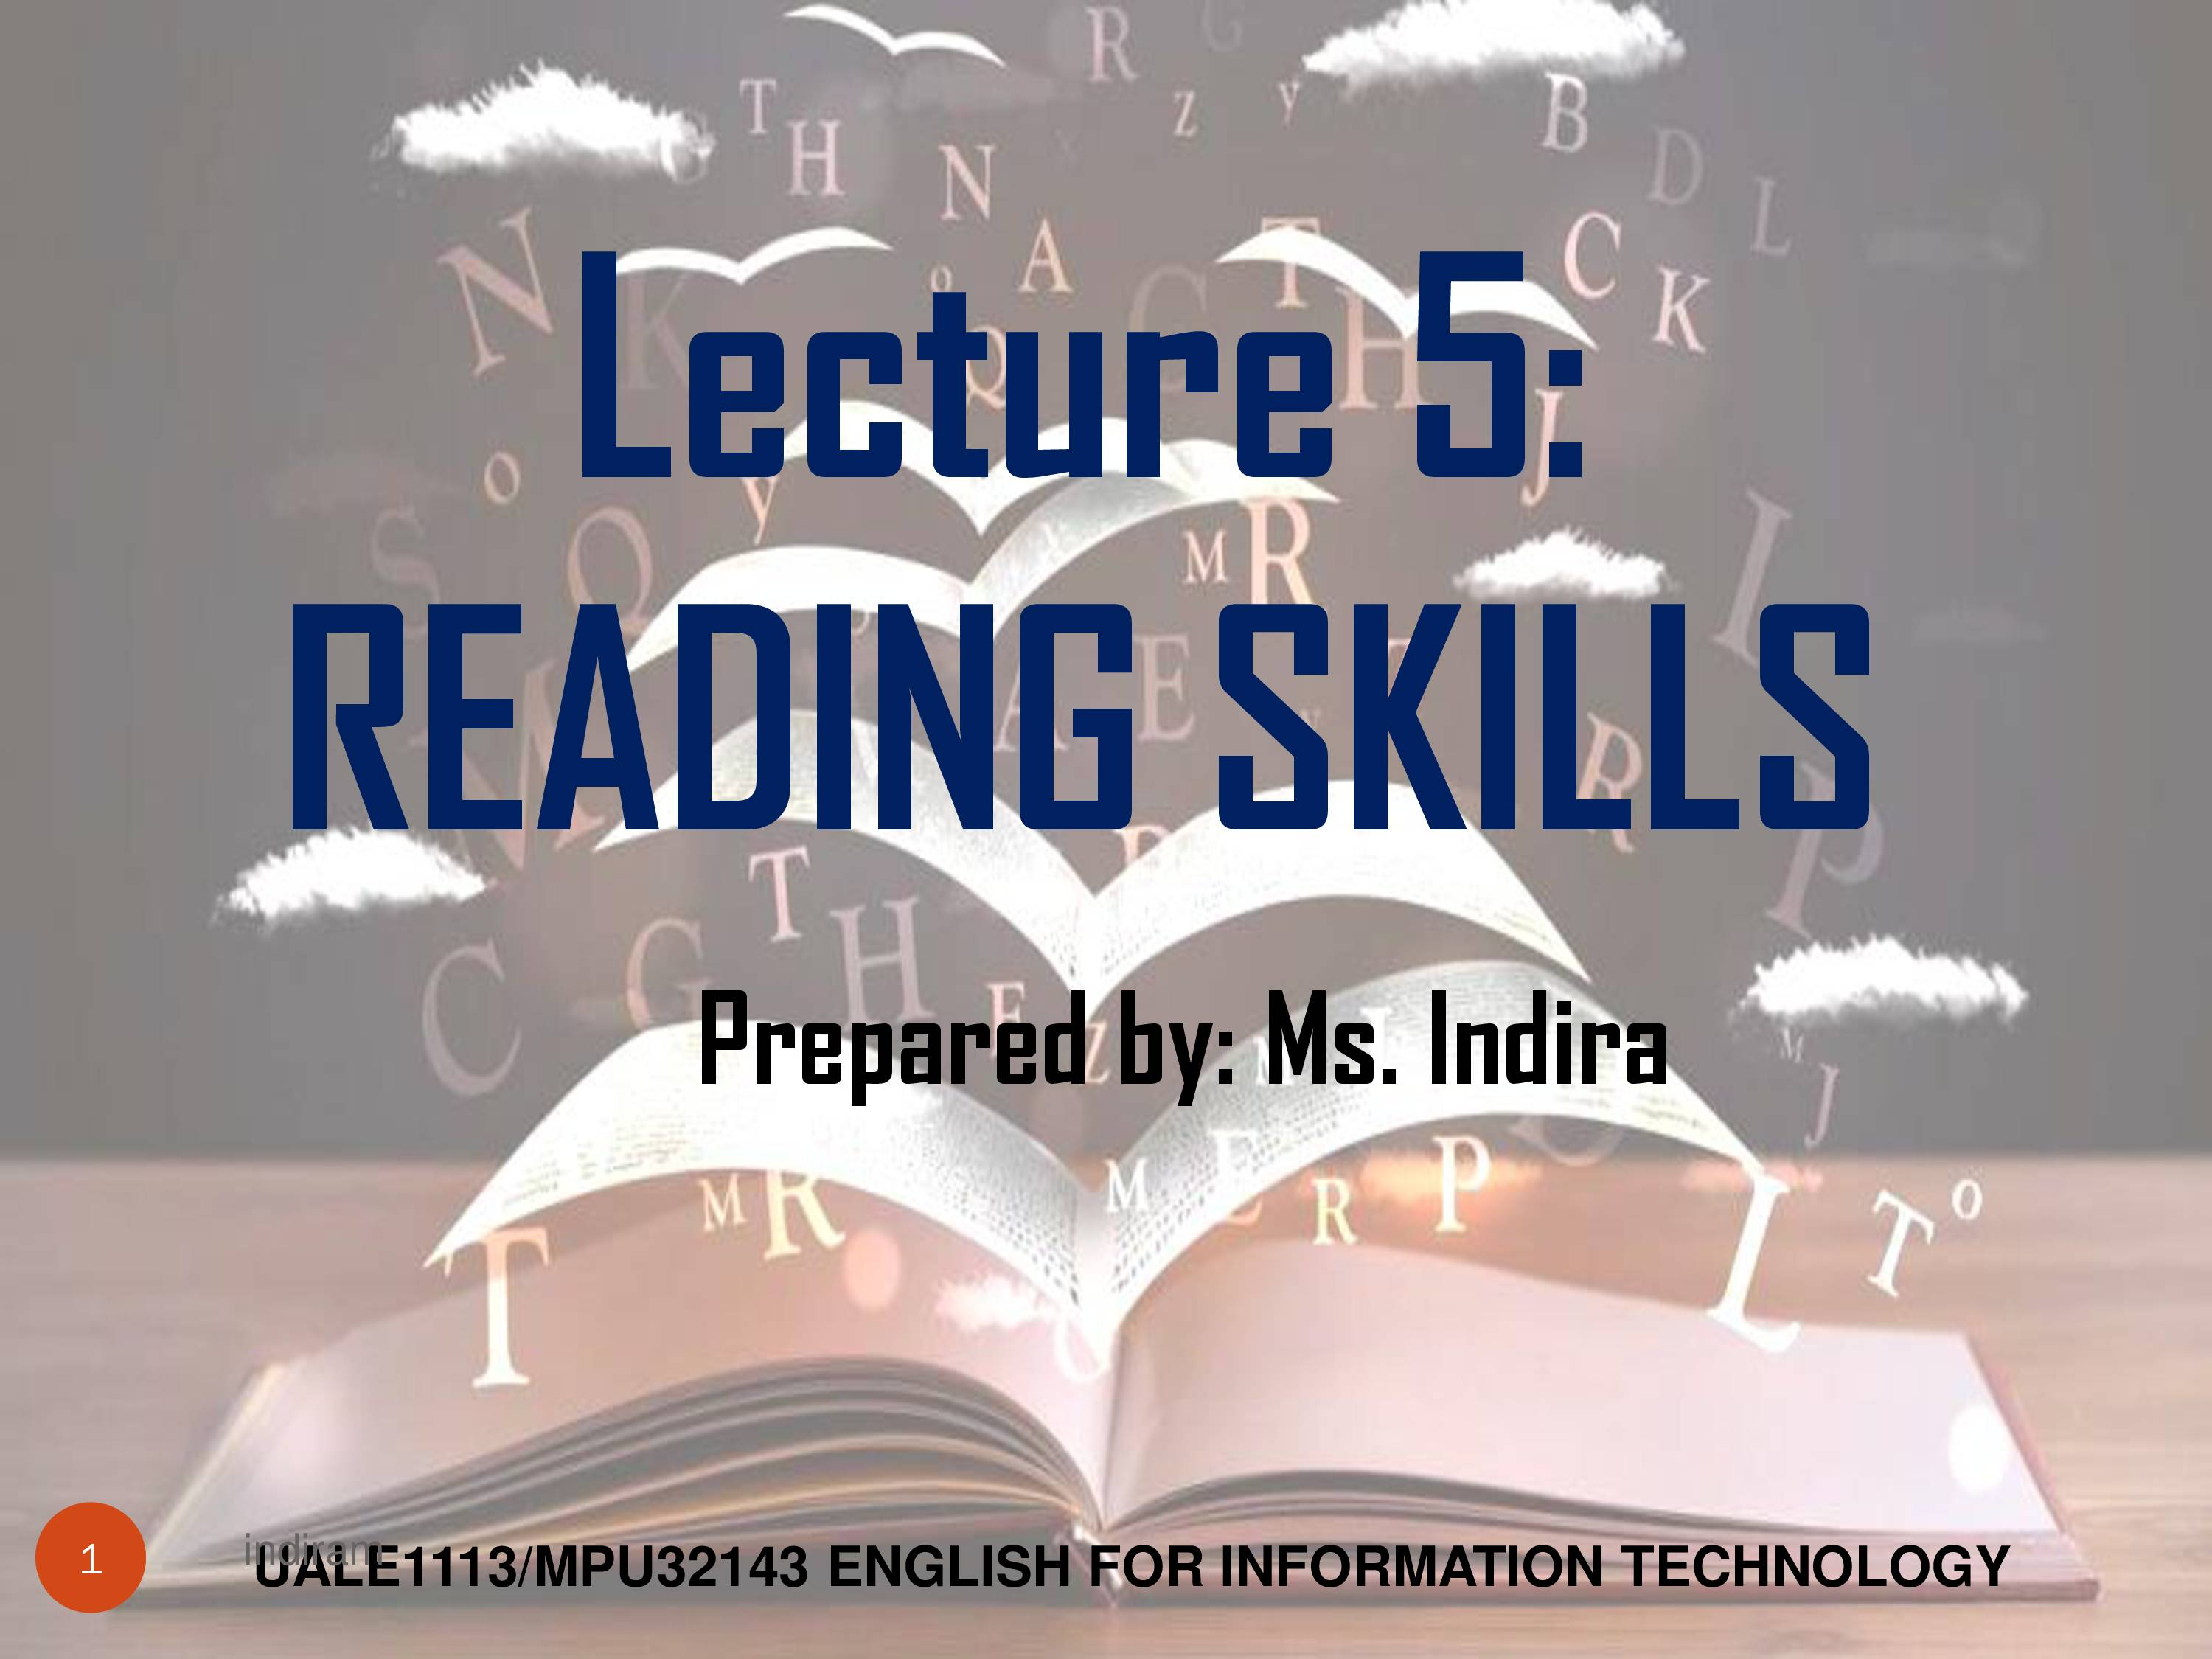 PPT On Reading Skills